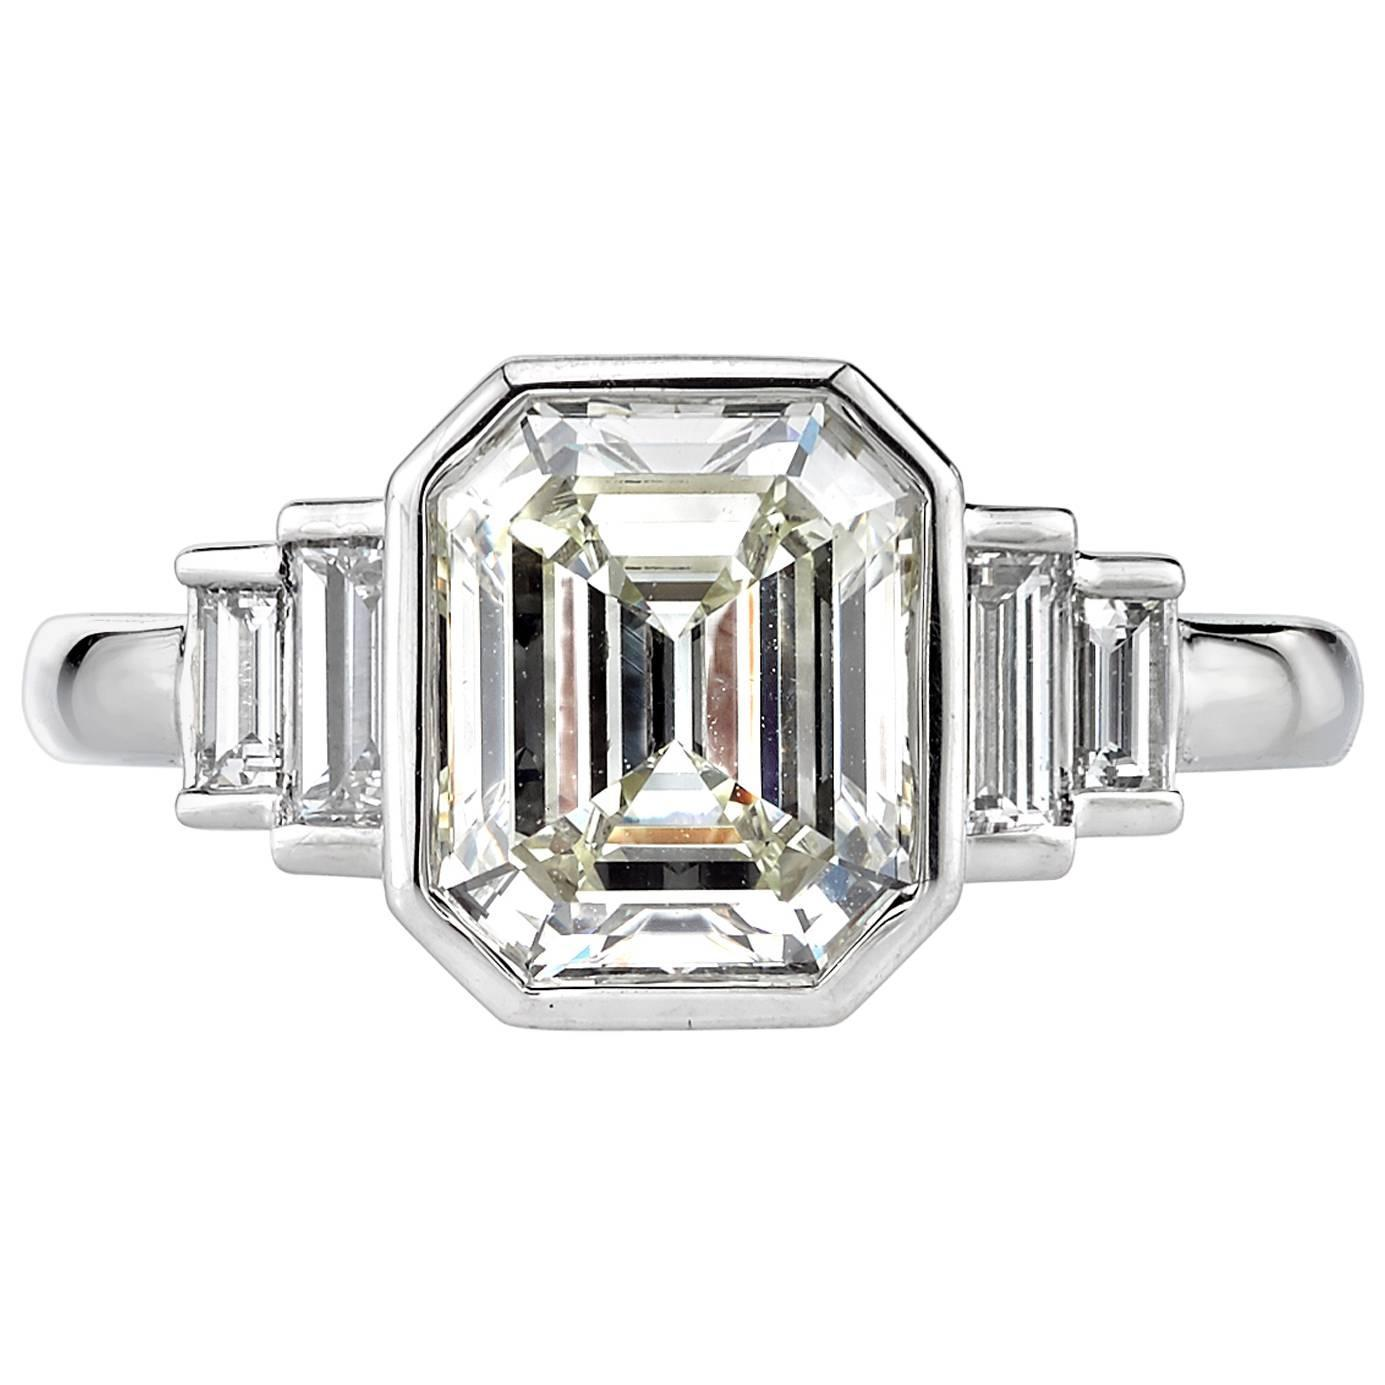 2 31 Carat Emerald cut Diamond platinum Engagement Ring For Sale at 1stdibs